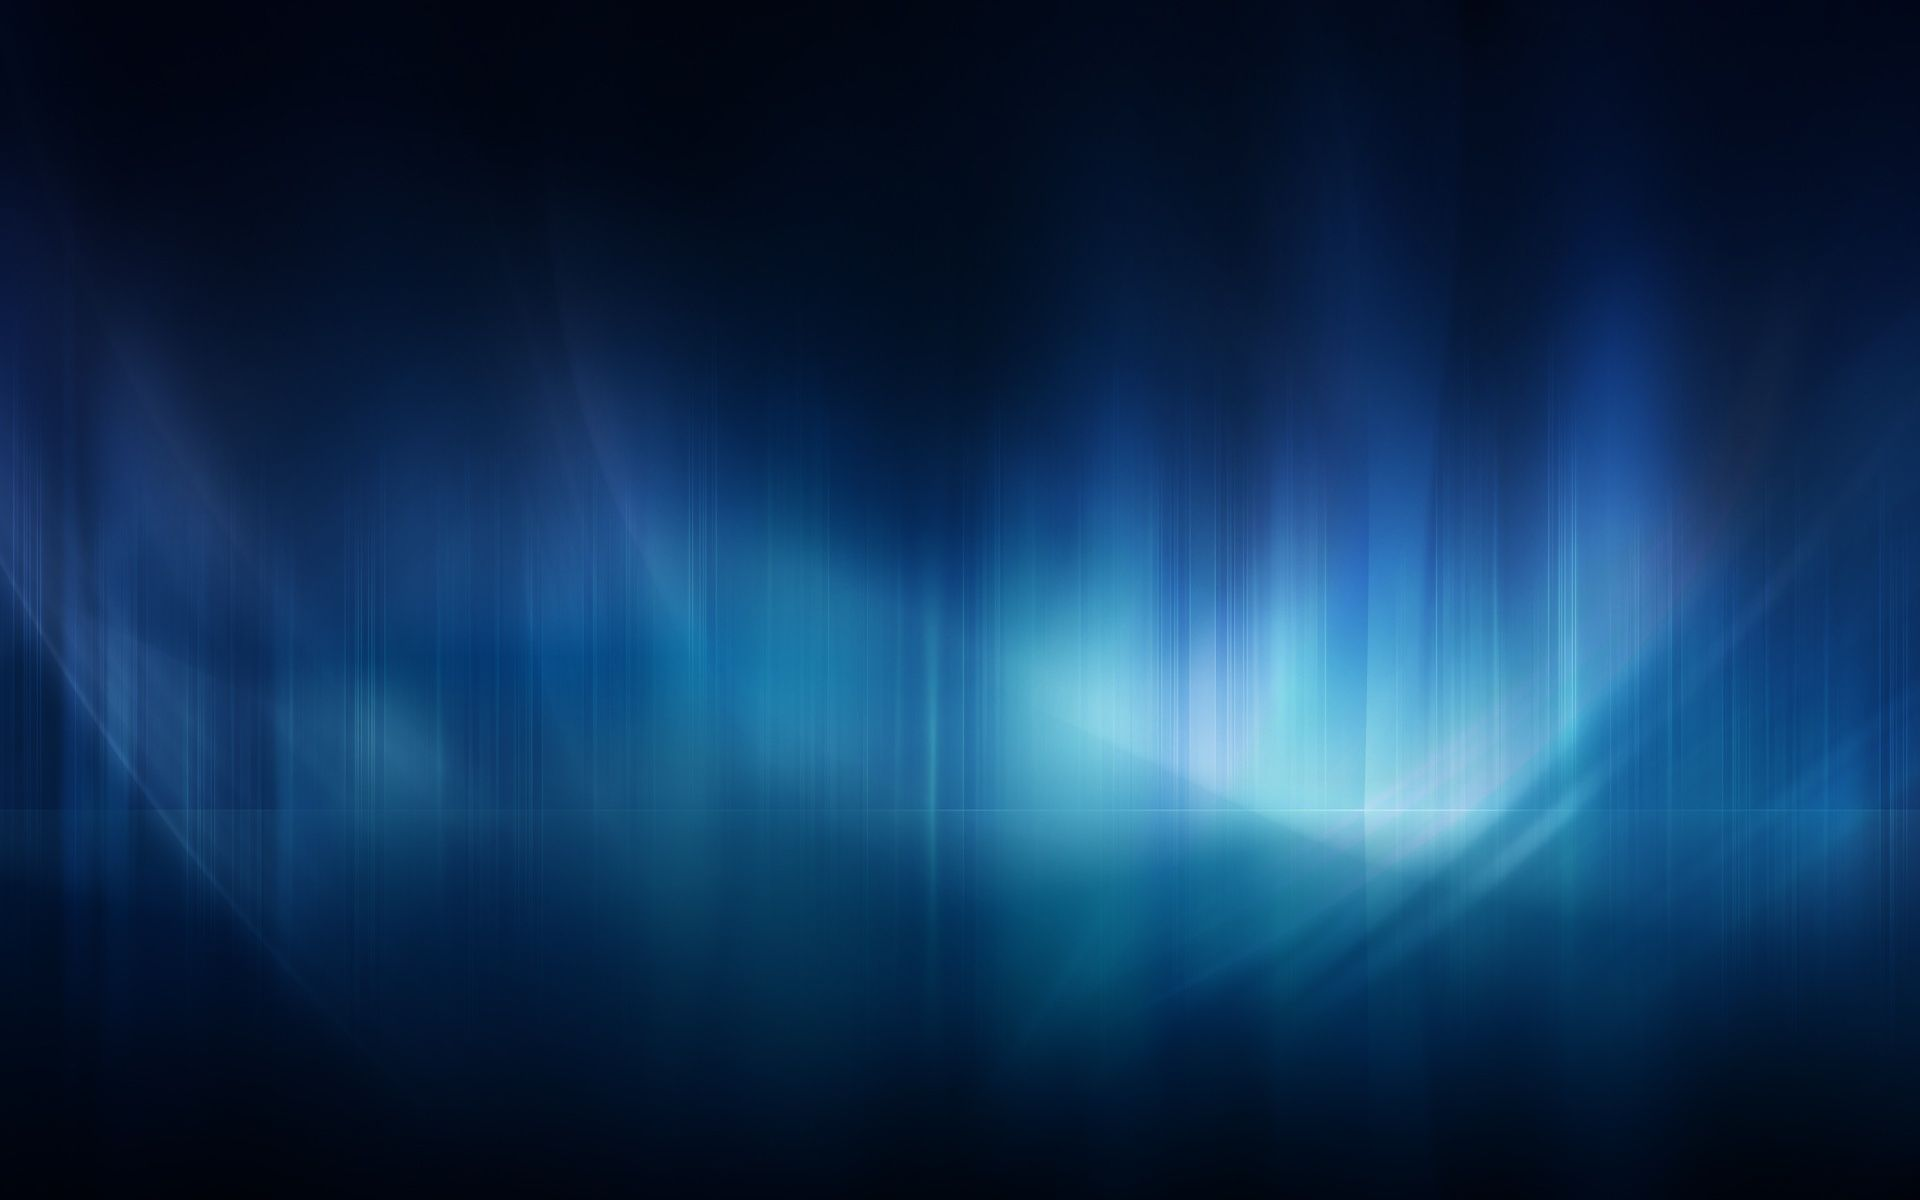 Cool white background - Cool Pictures For Backgrounds Hd P Hd Wallpapers Lzamgs 1920 1200 Cool Background 42